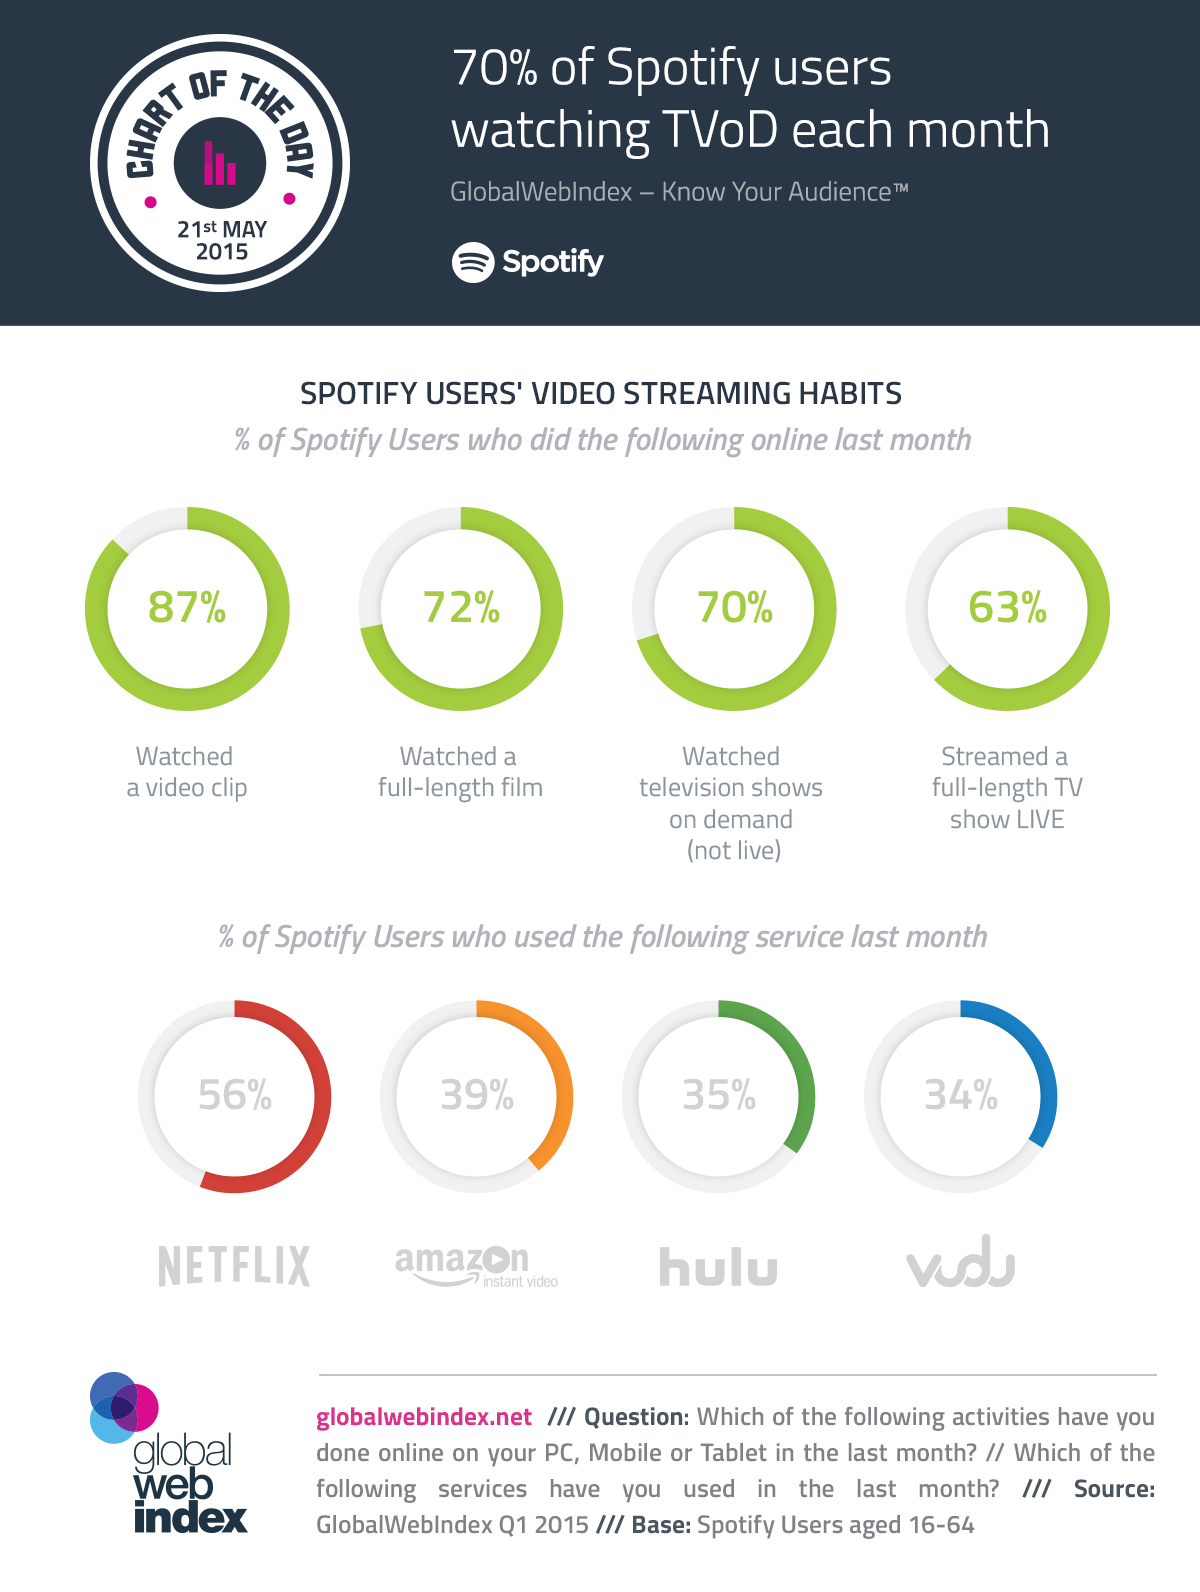 70% of Spotify users watching TVoD each month - GlobalWebIndex Blog